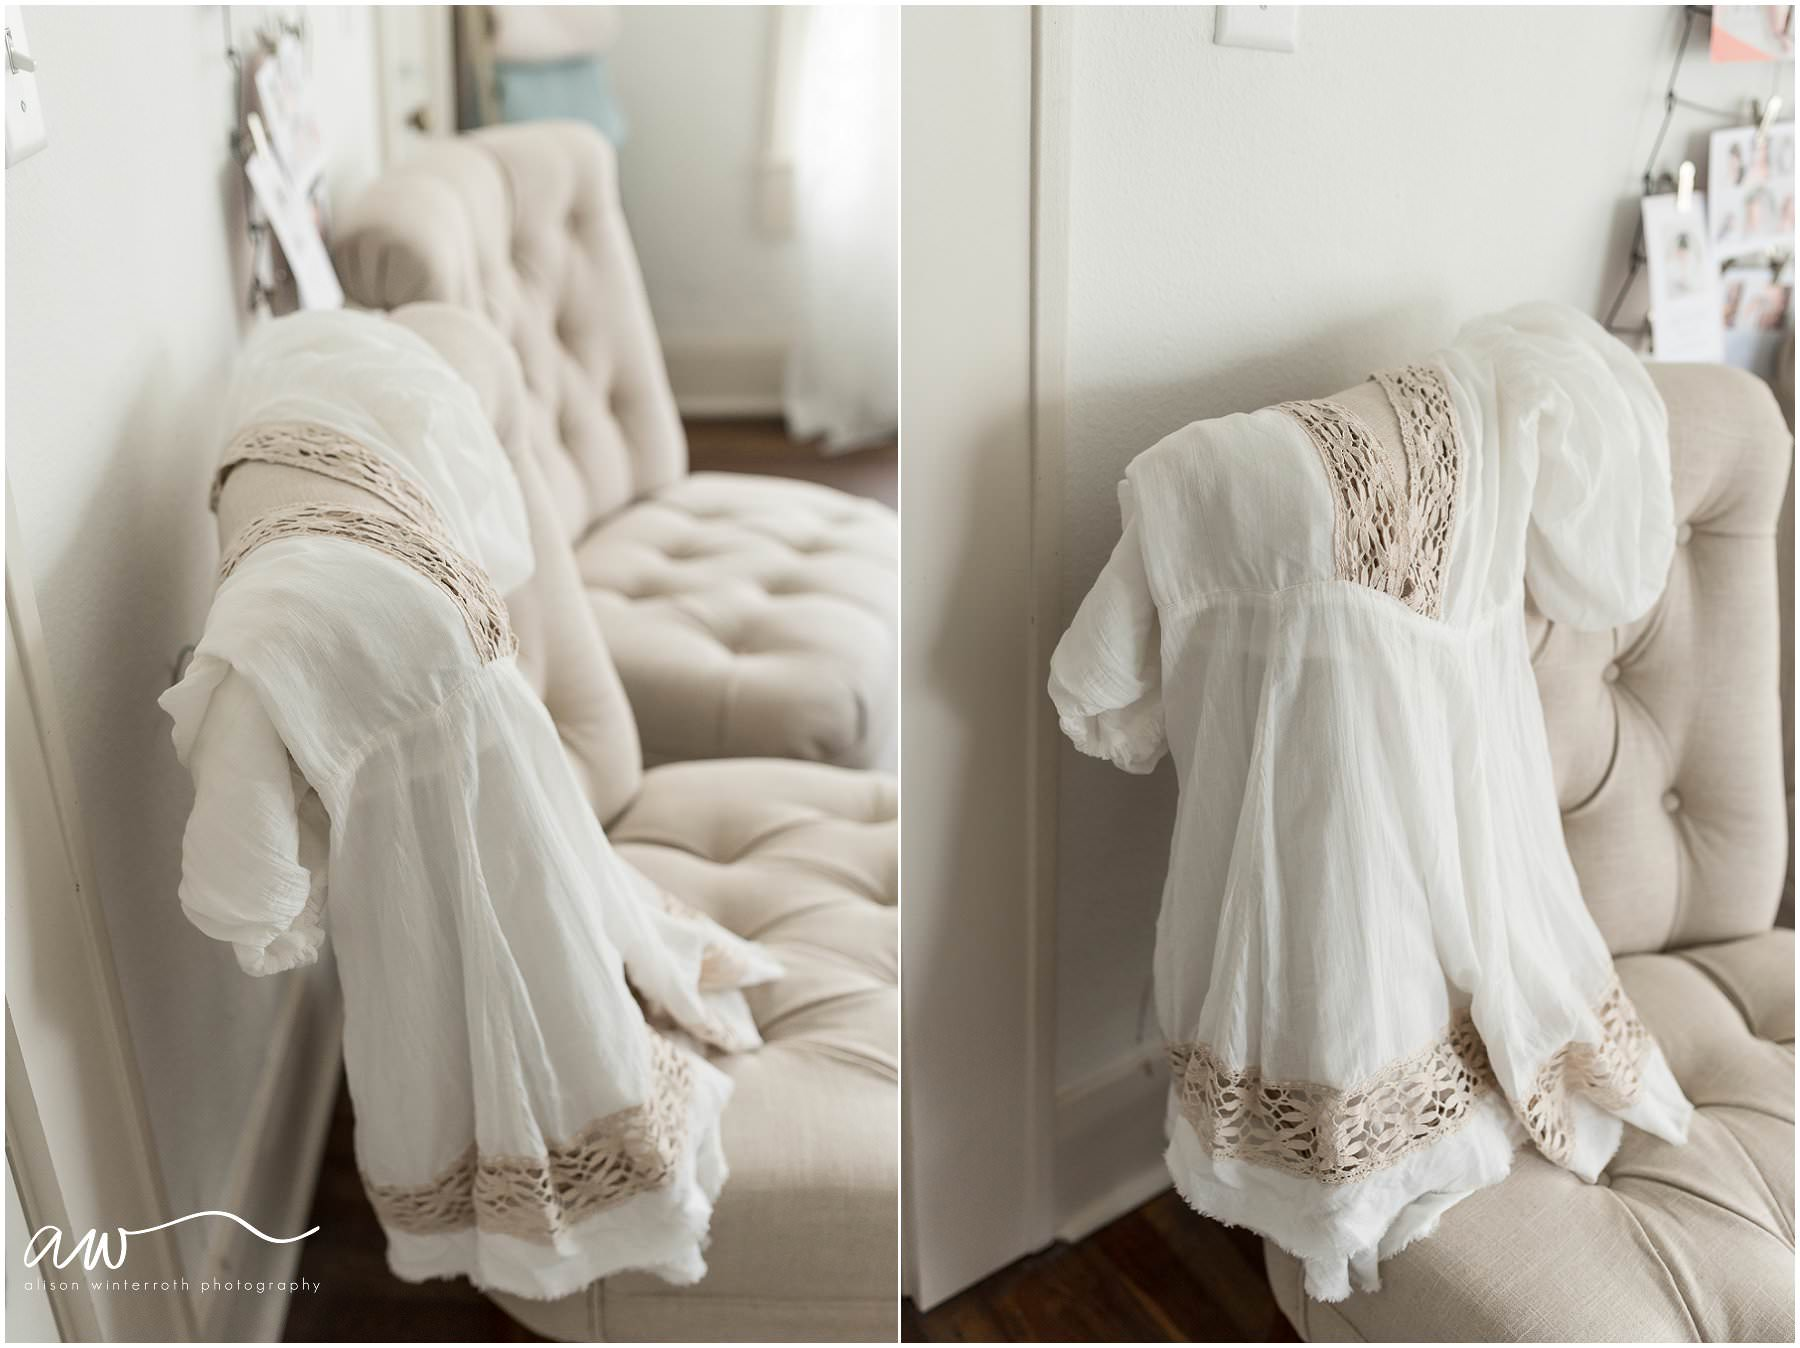 clothing used for sessions in a maternity session